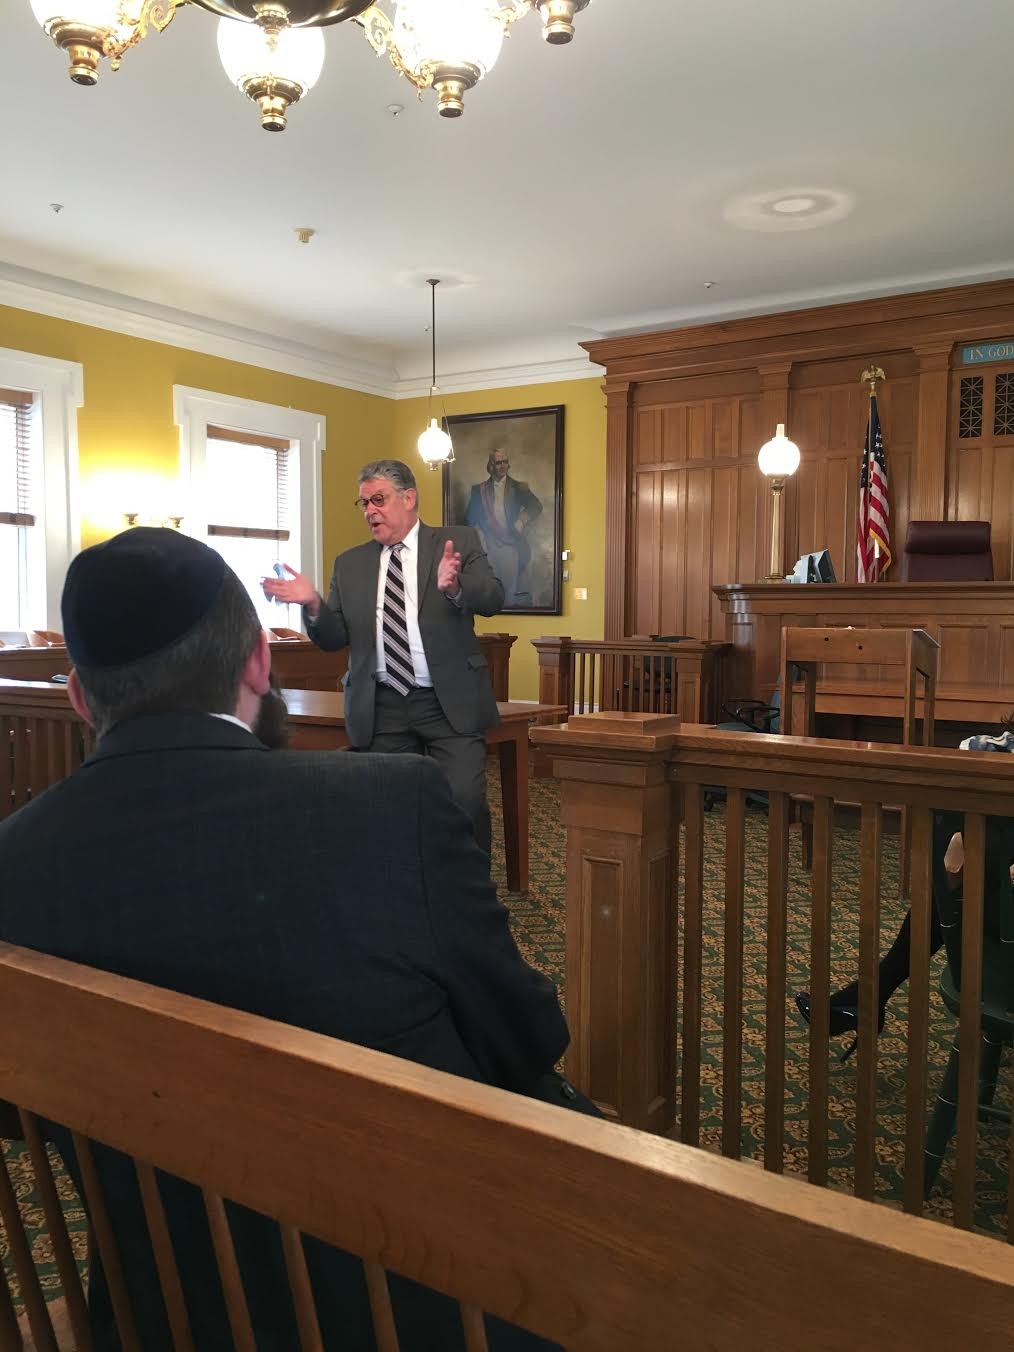 Putnam County Bar Association lawyer in court